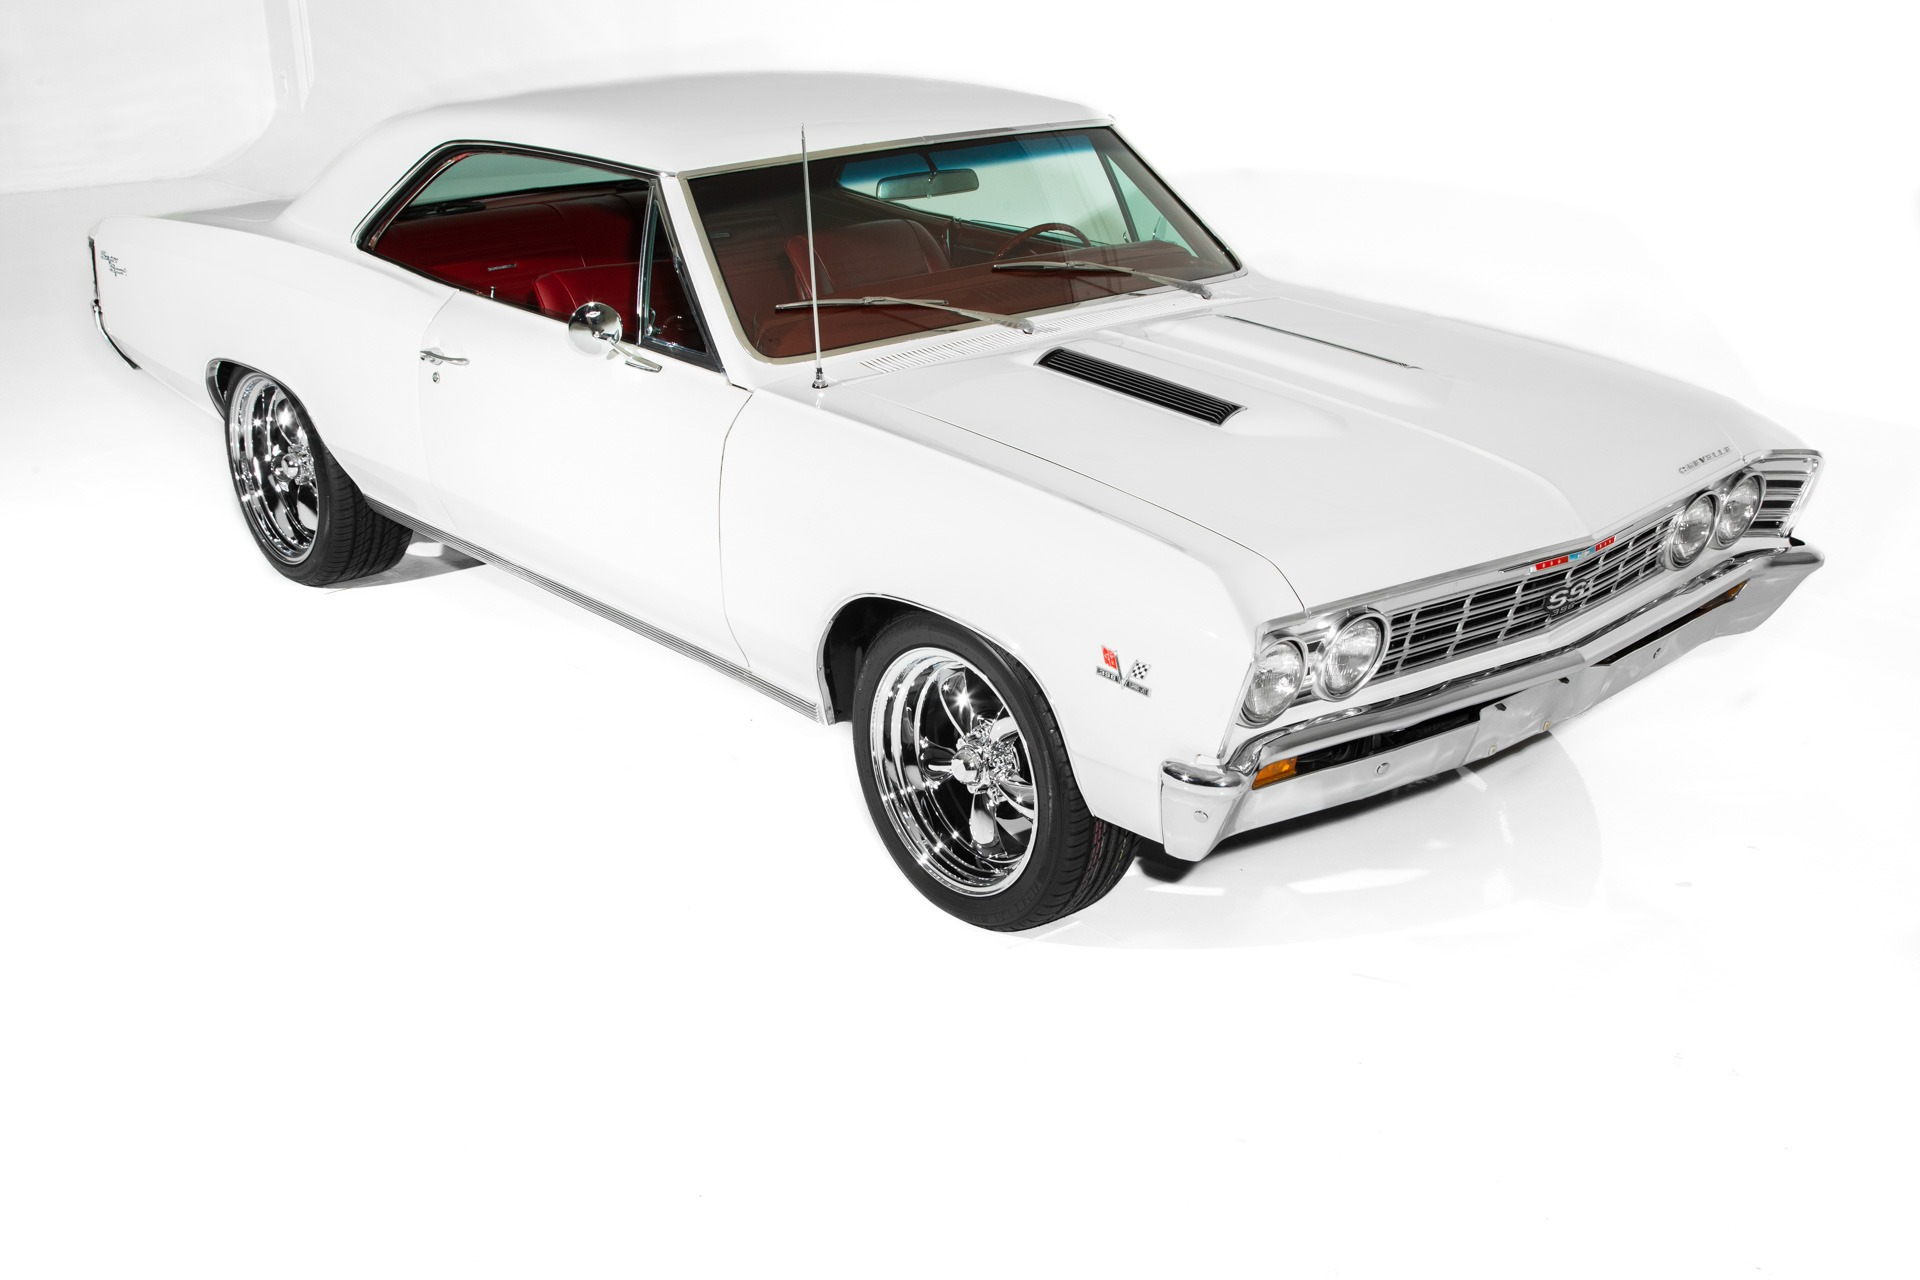 For Sale Used 1967 Chevrolet Chevelle SS options PS  PB AC Chrome | American Dream Machines Des Moines IA 50309